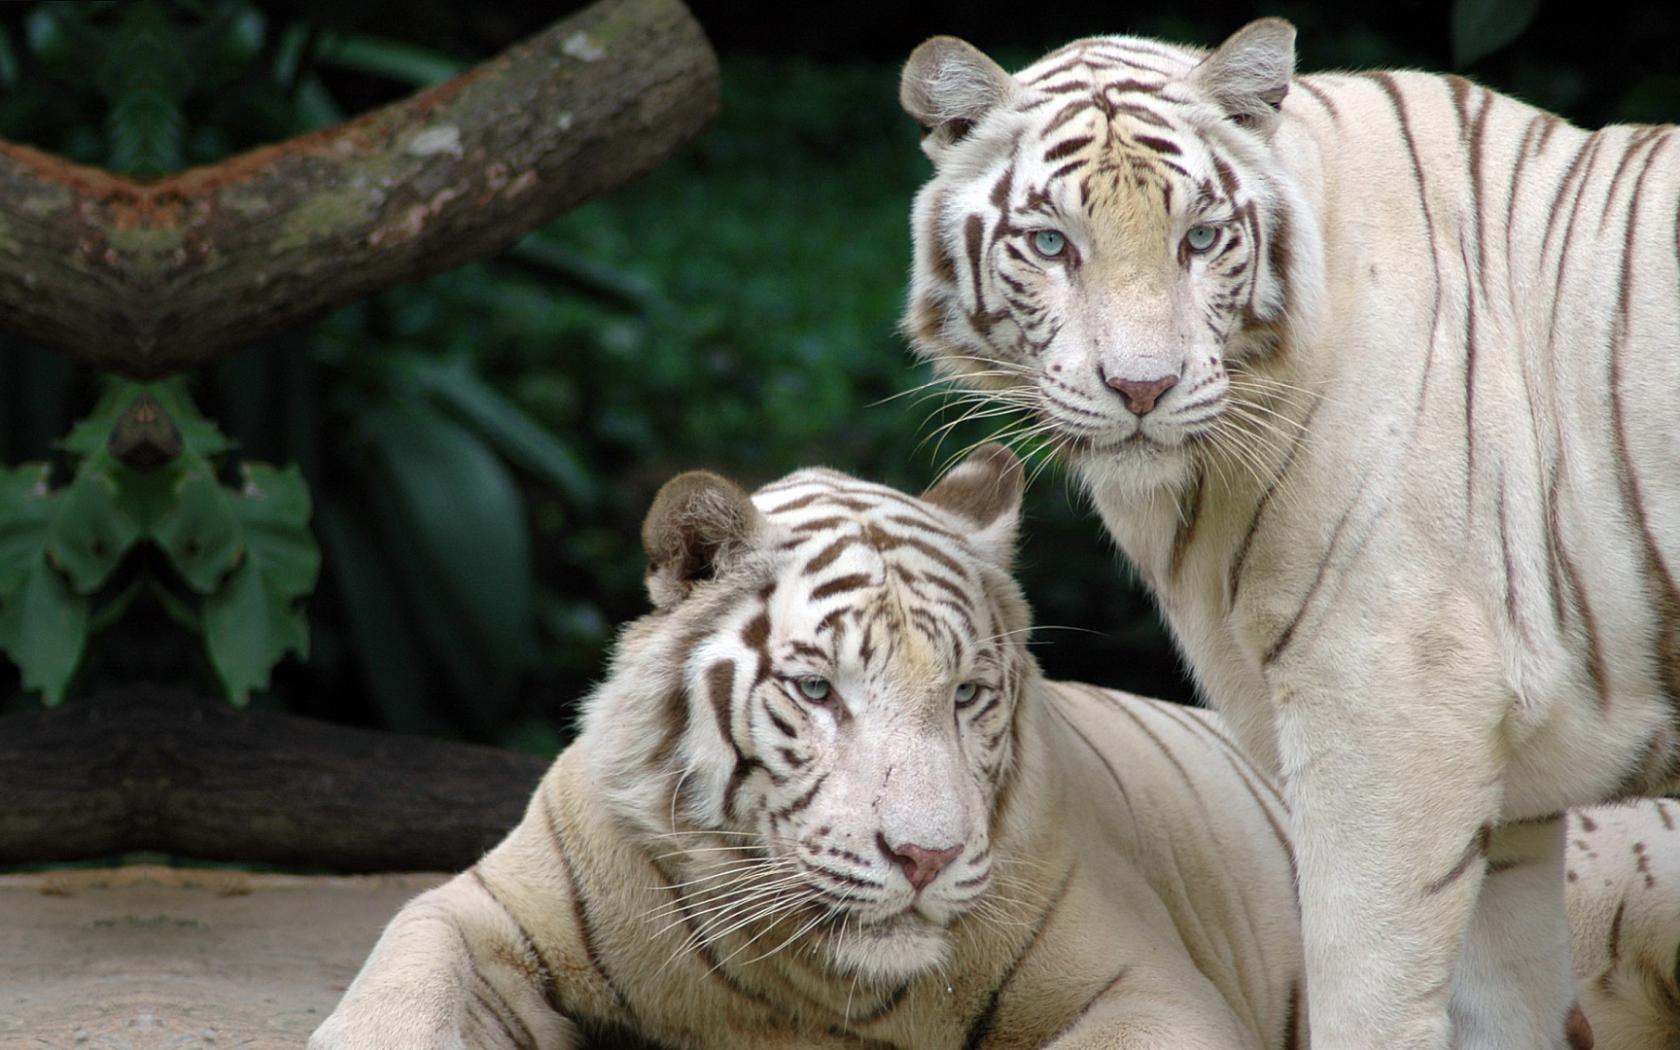 White Bengal Tiger Wallpaper 10656 Hd Wallpapers in Animals   Imagesci 1680x1050